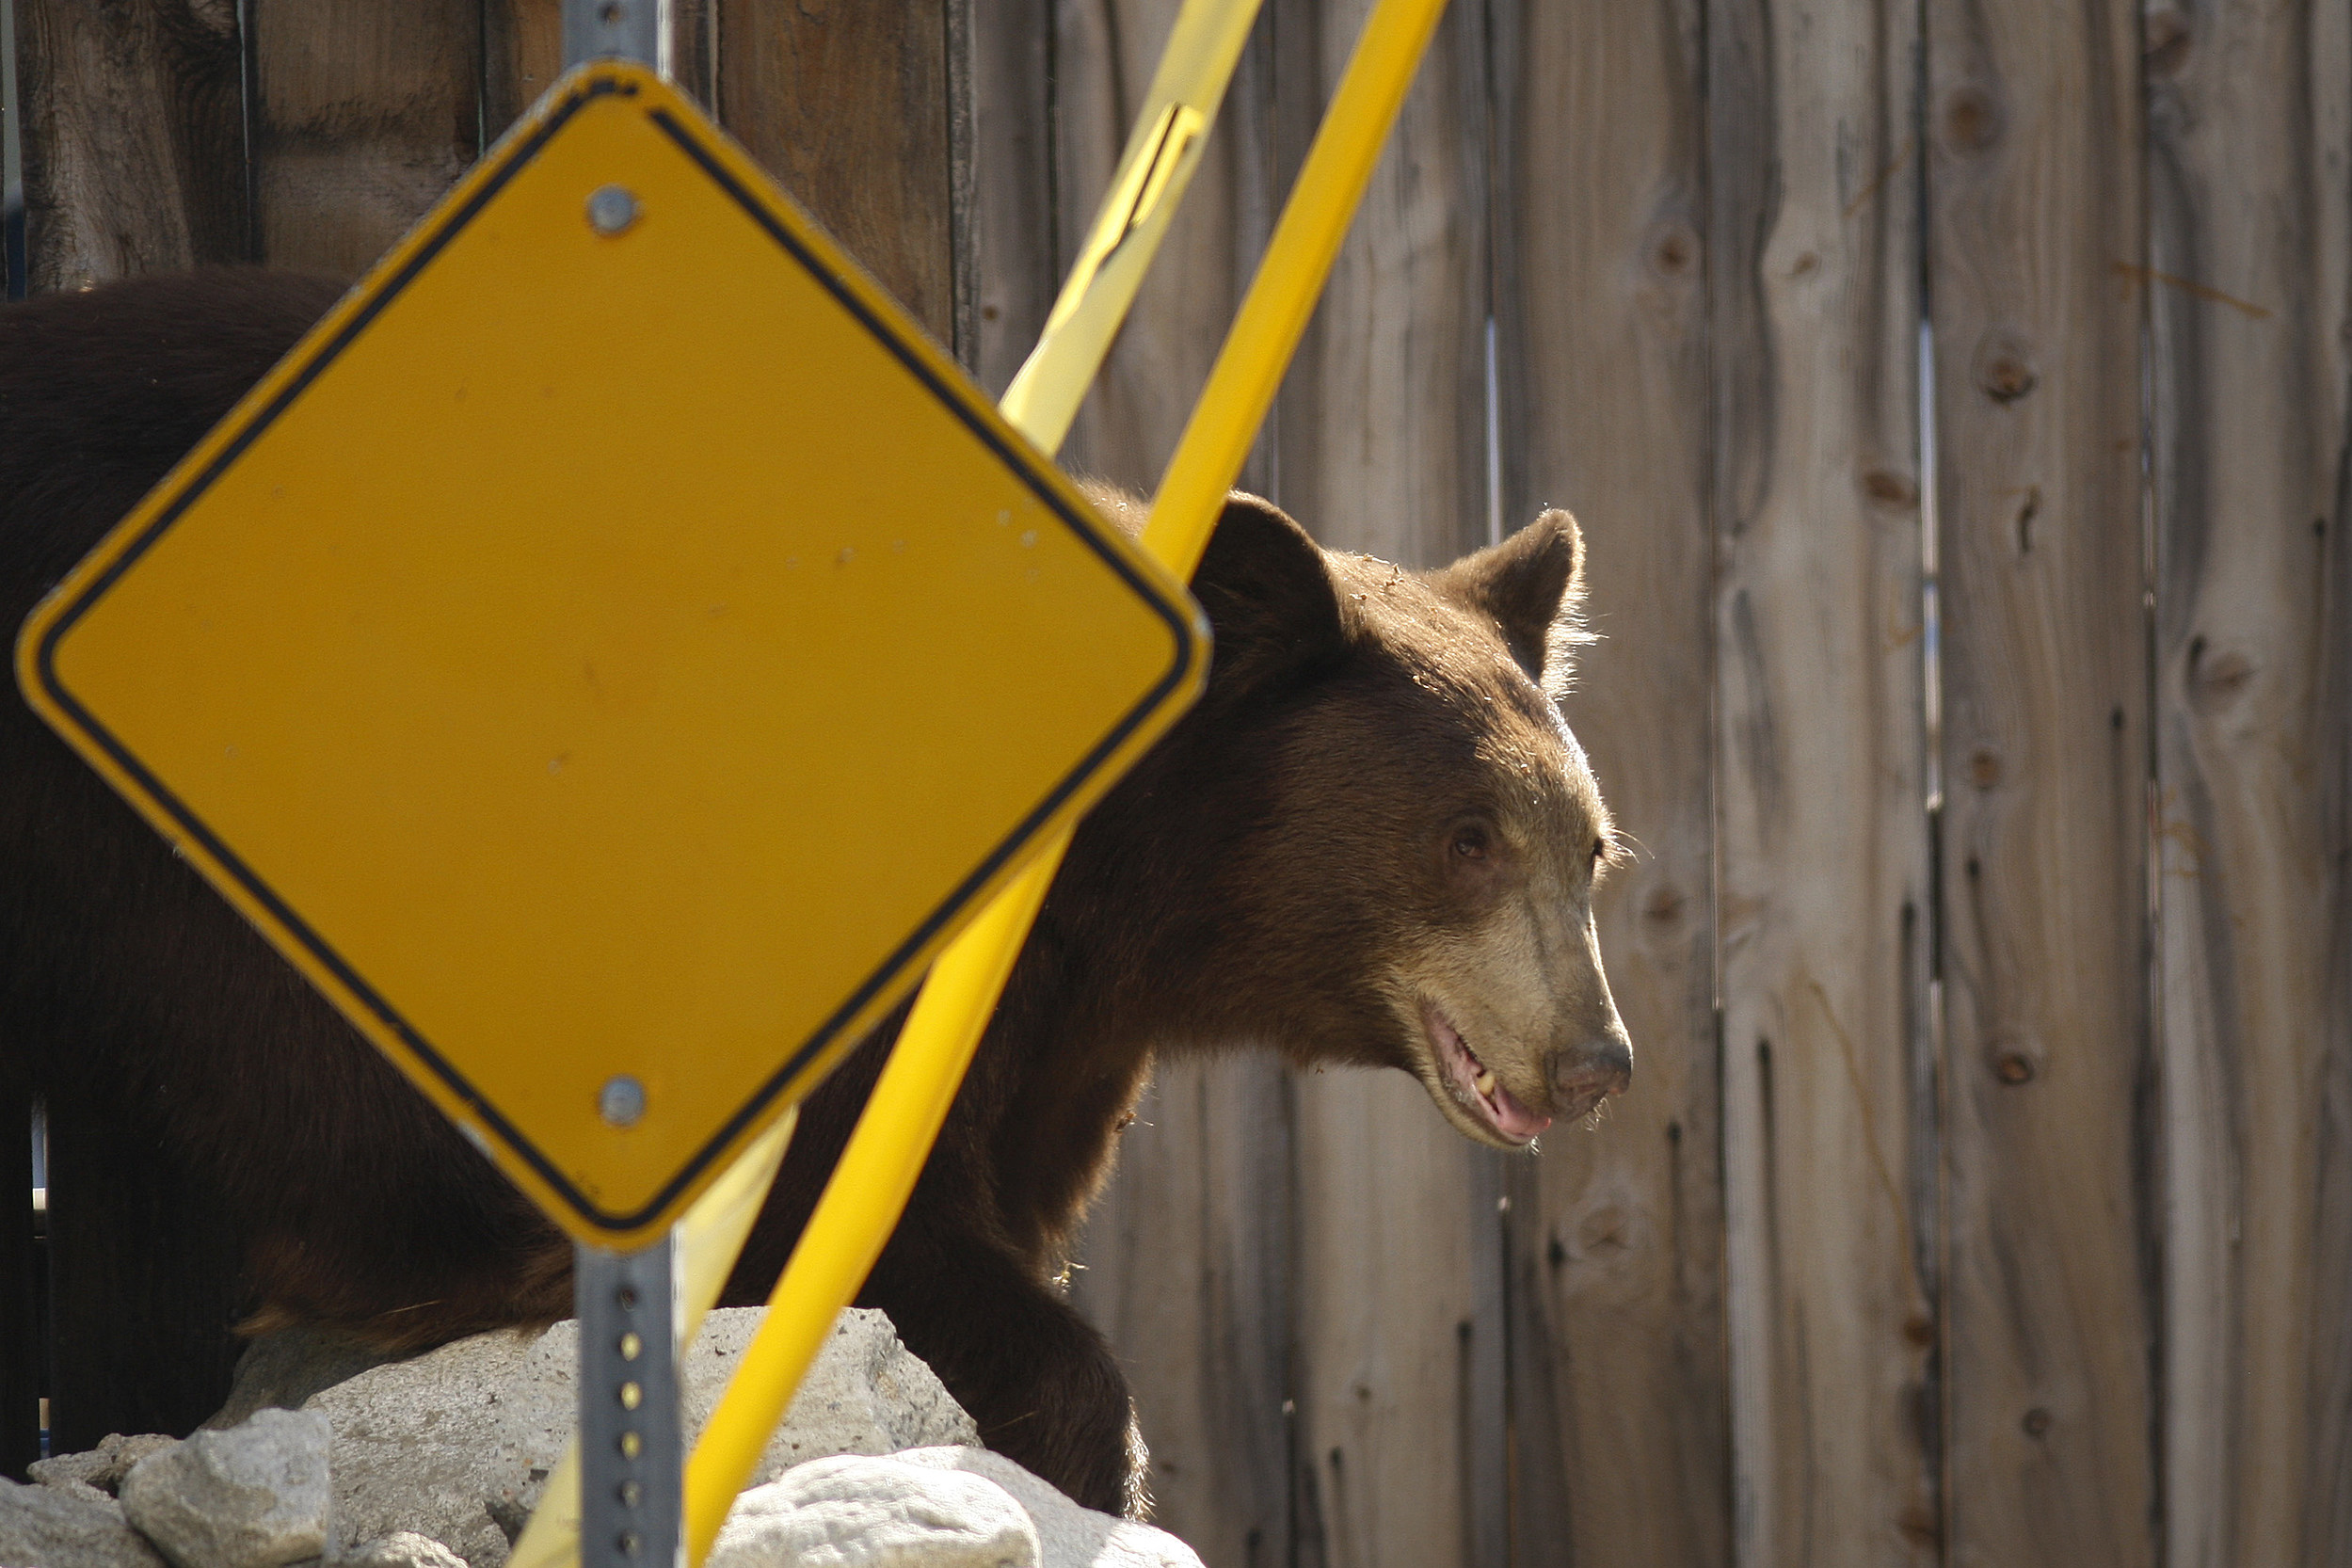 Woman airlifted to hospital after bear attack near Priest Lake